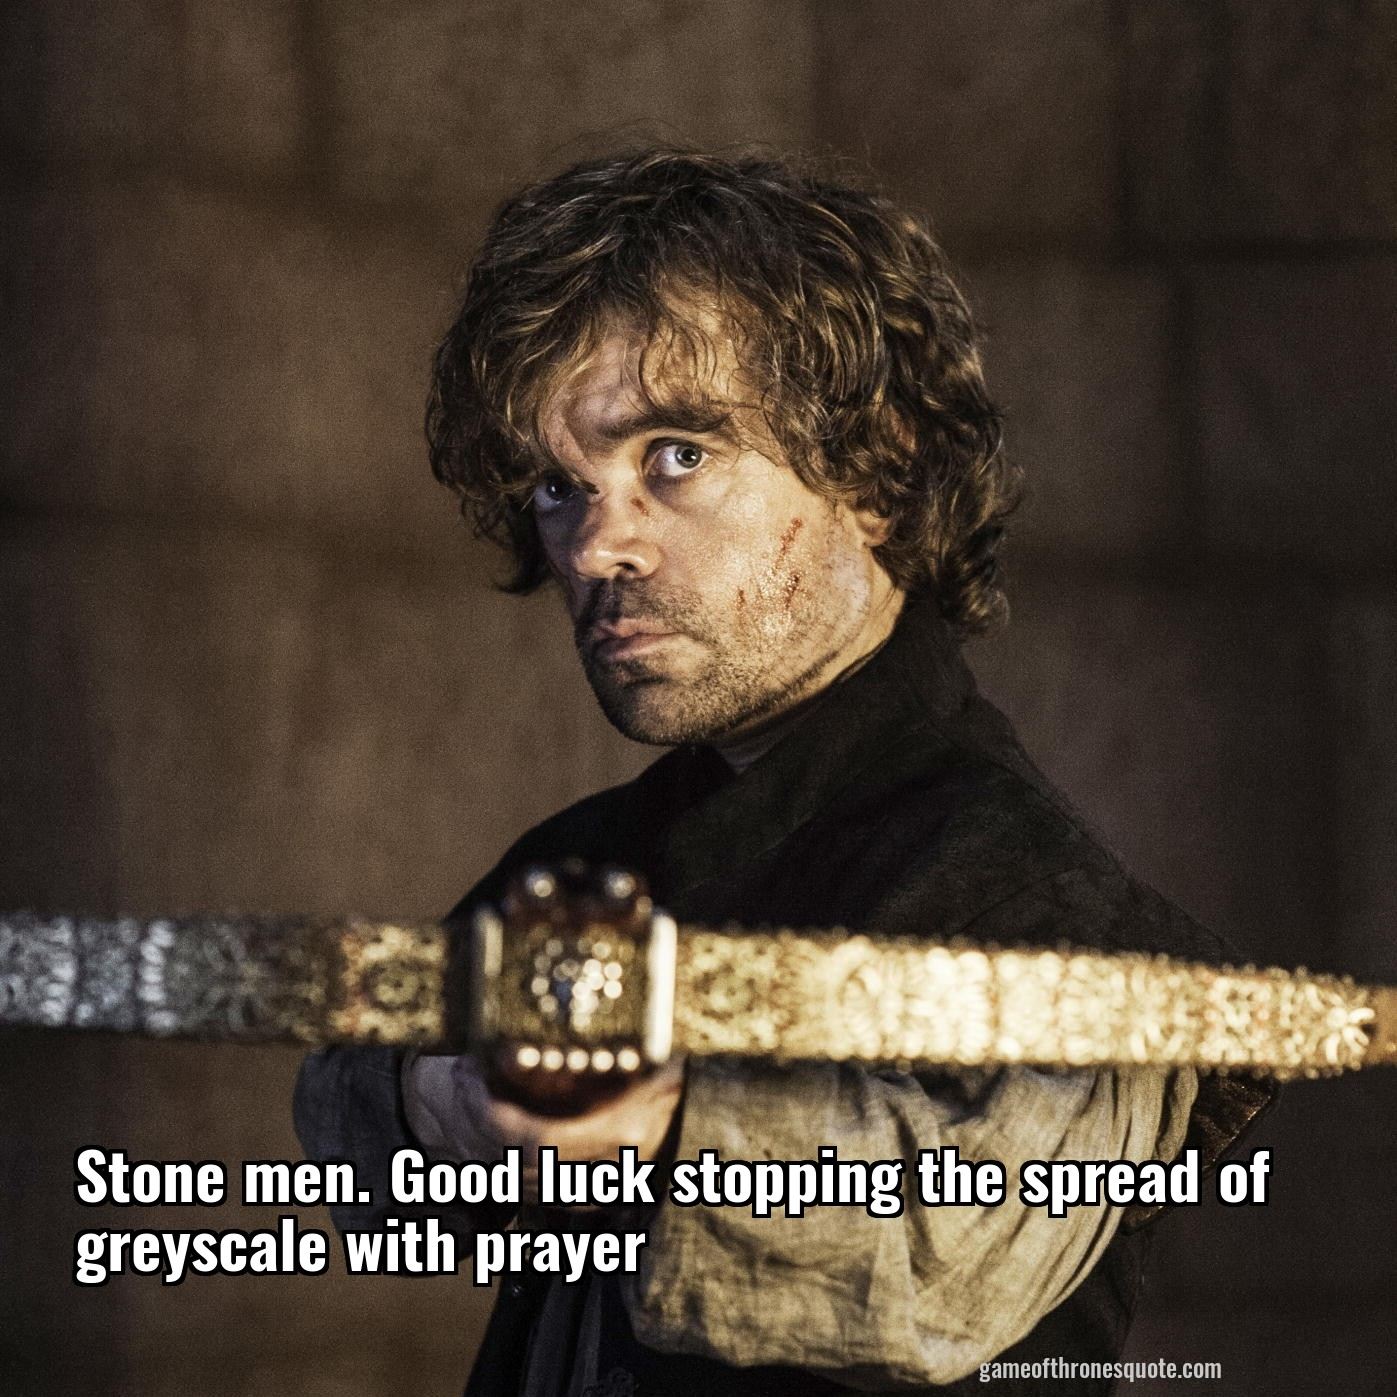 Tyrion Lannister: Stone men. Good luck stopping the spread of